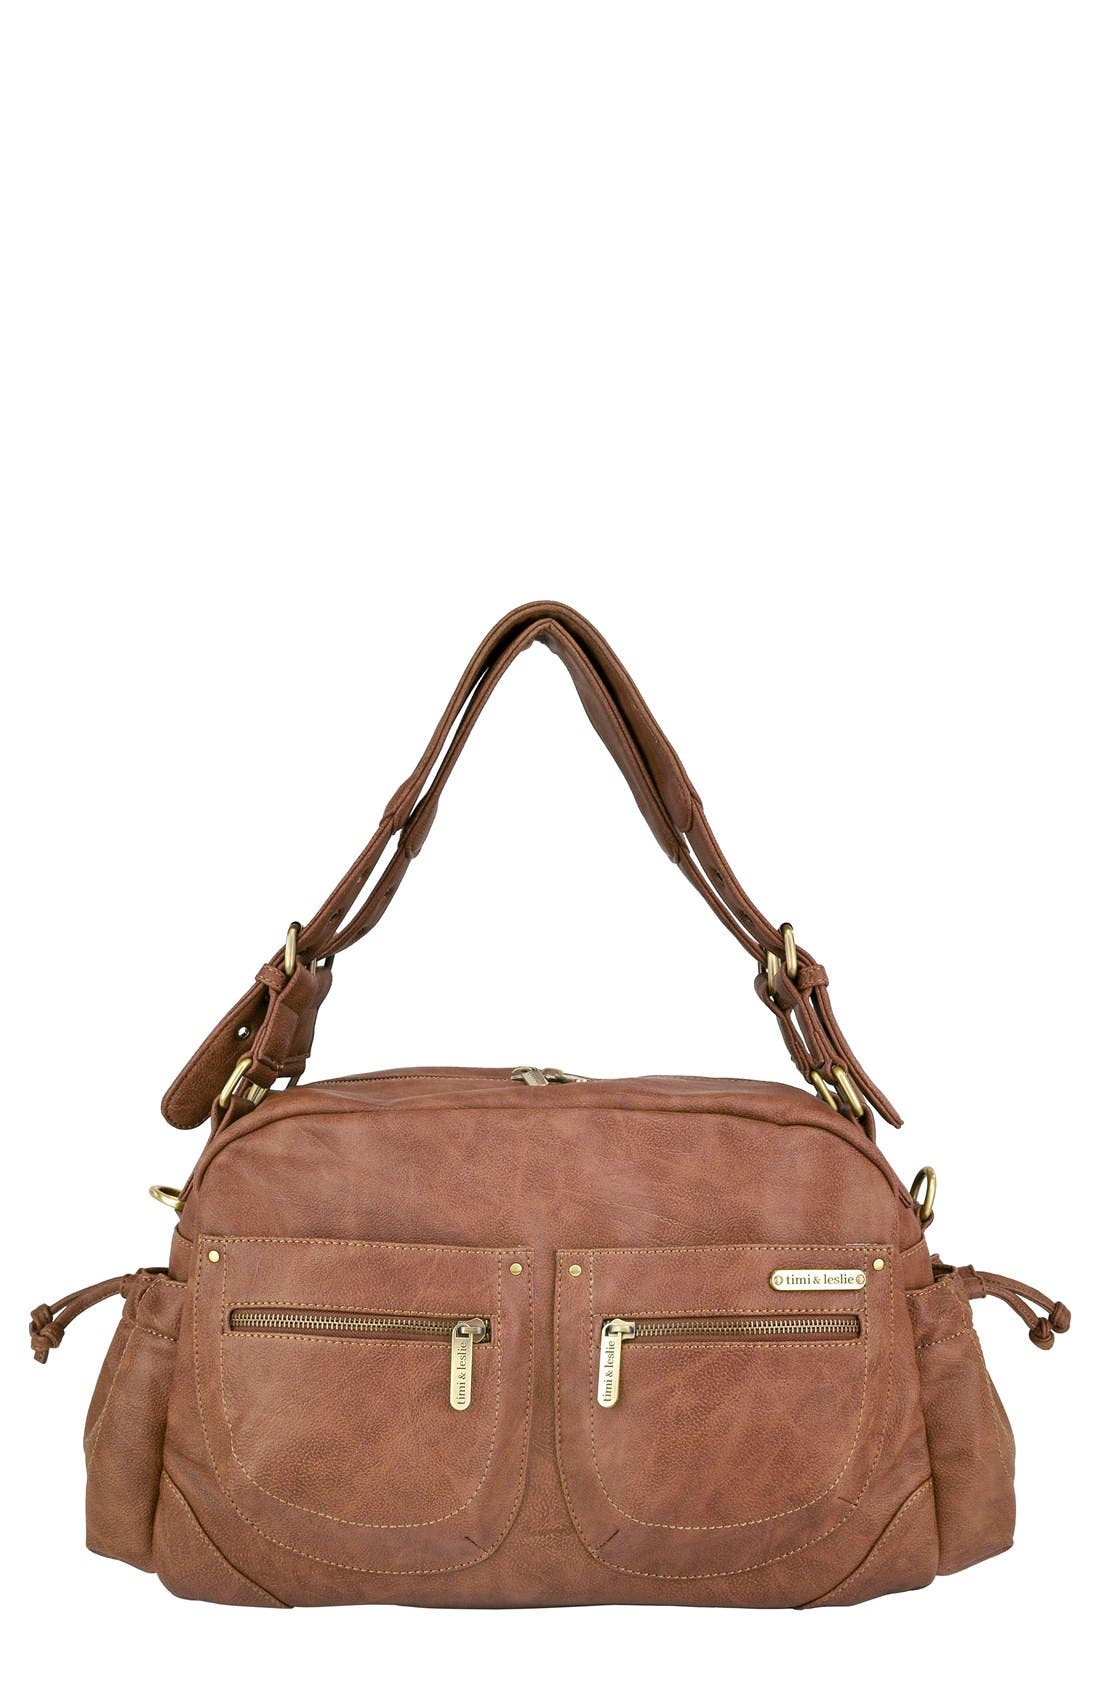 Alternate Image 1 Selected - Timi & Leslie 'Jessica' Diaper Bag